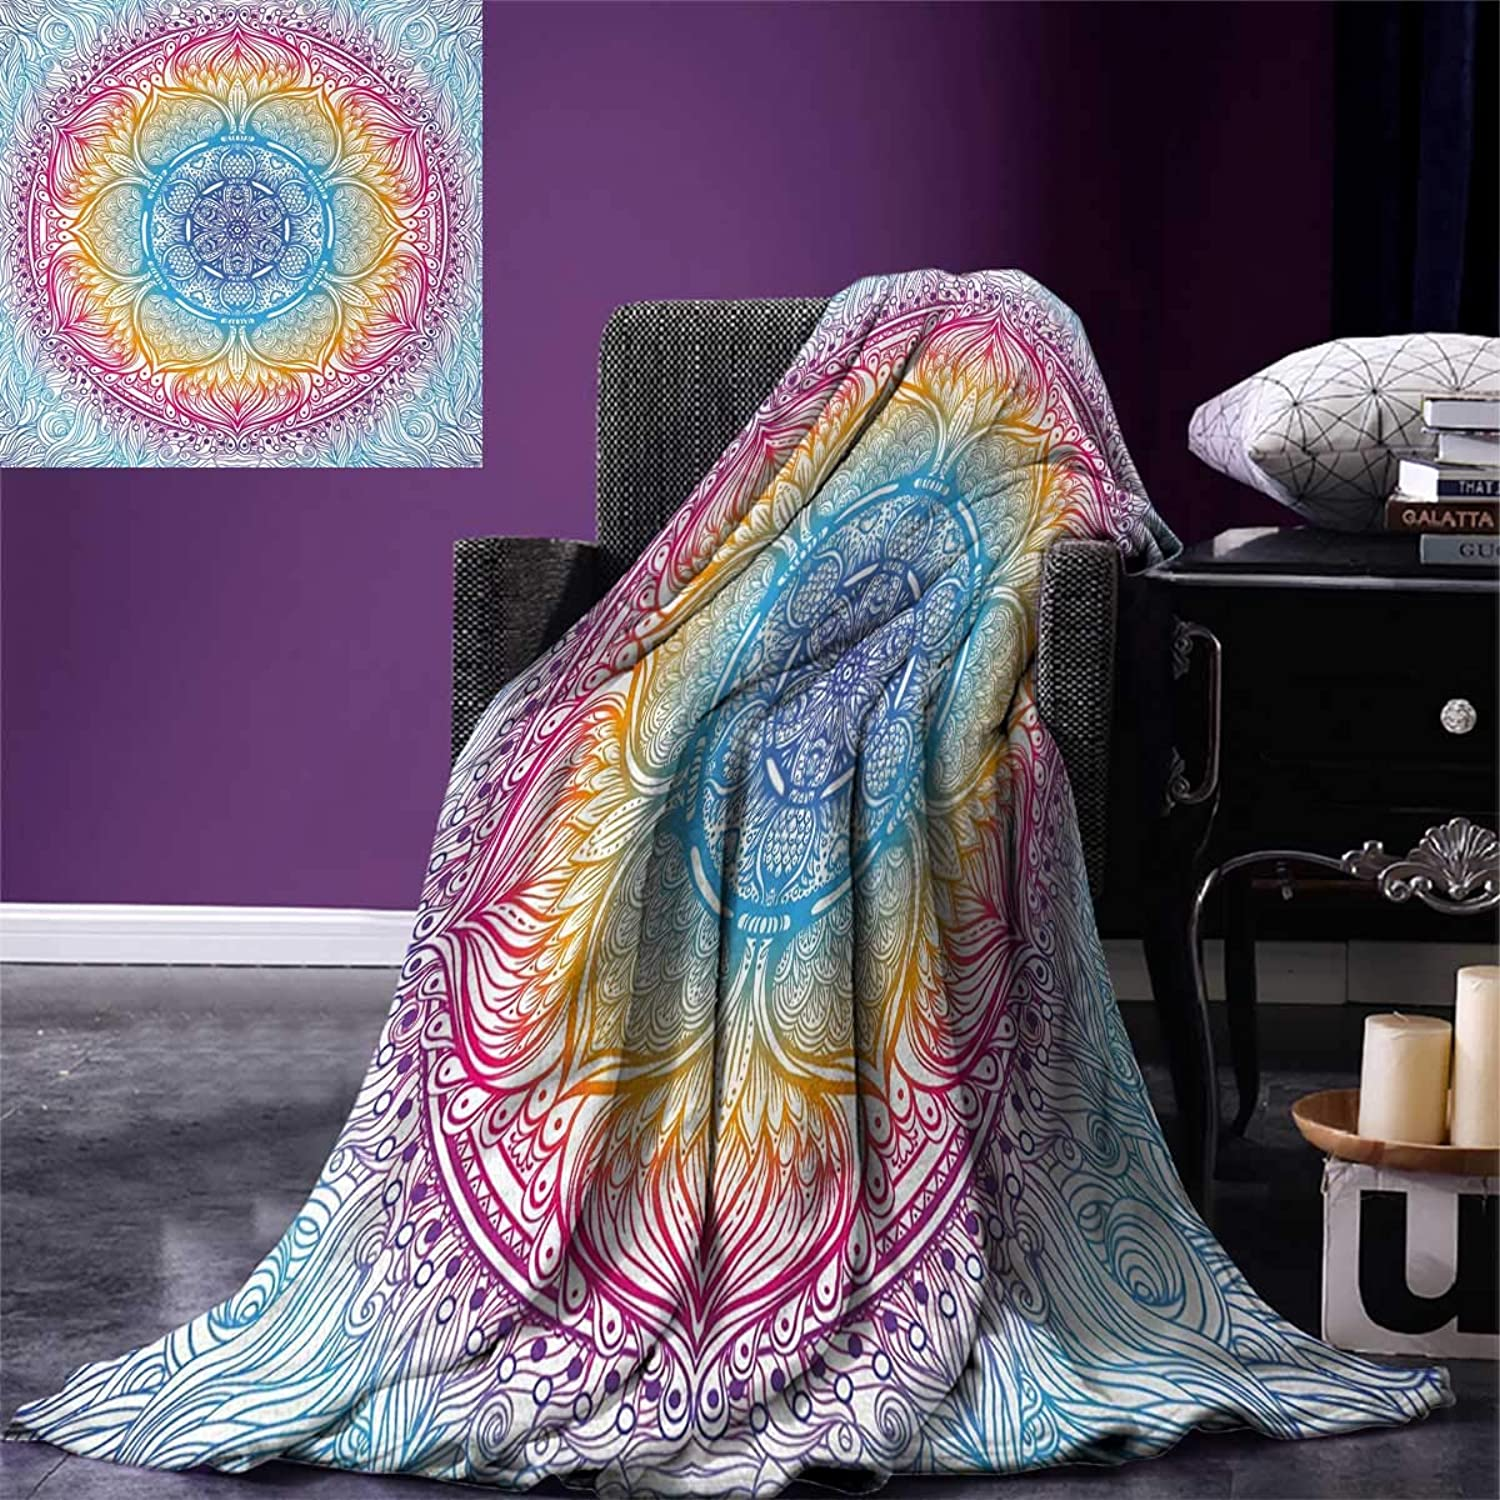 Anniutwo Ethnic King Flannel Blanket Magical Fantastic Design in Vivid colors Boho Round Figure Blooms Lotus Inspiration Weave Pattern Extra Long Blanket 90 x108  Multicolor